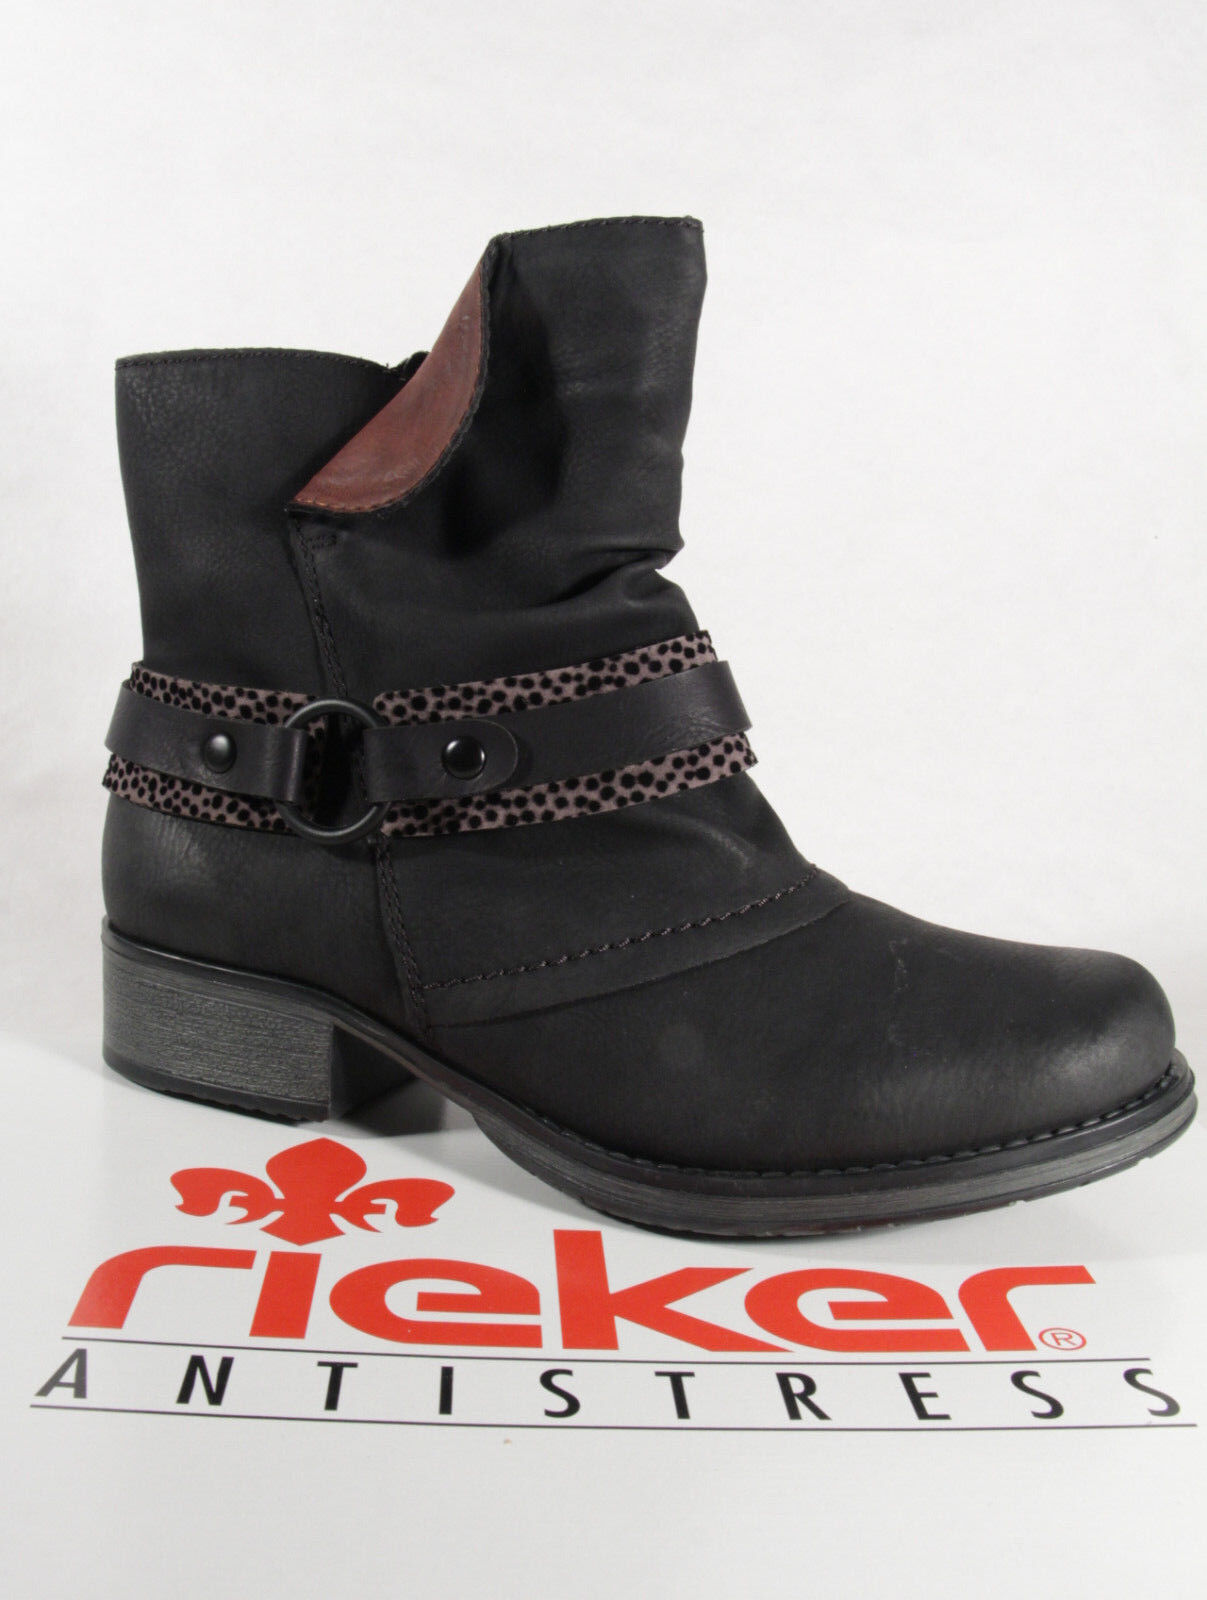 Rieker Boots y9792 Ankle Boots, Winter Boots Black NEW